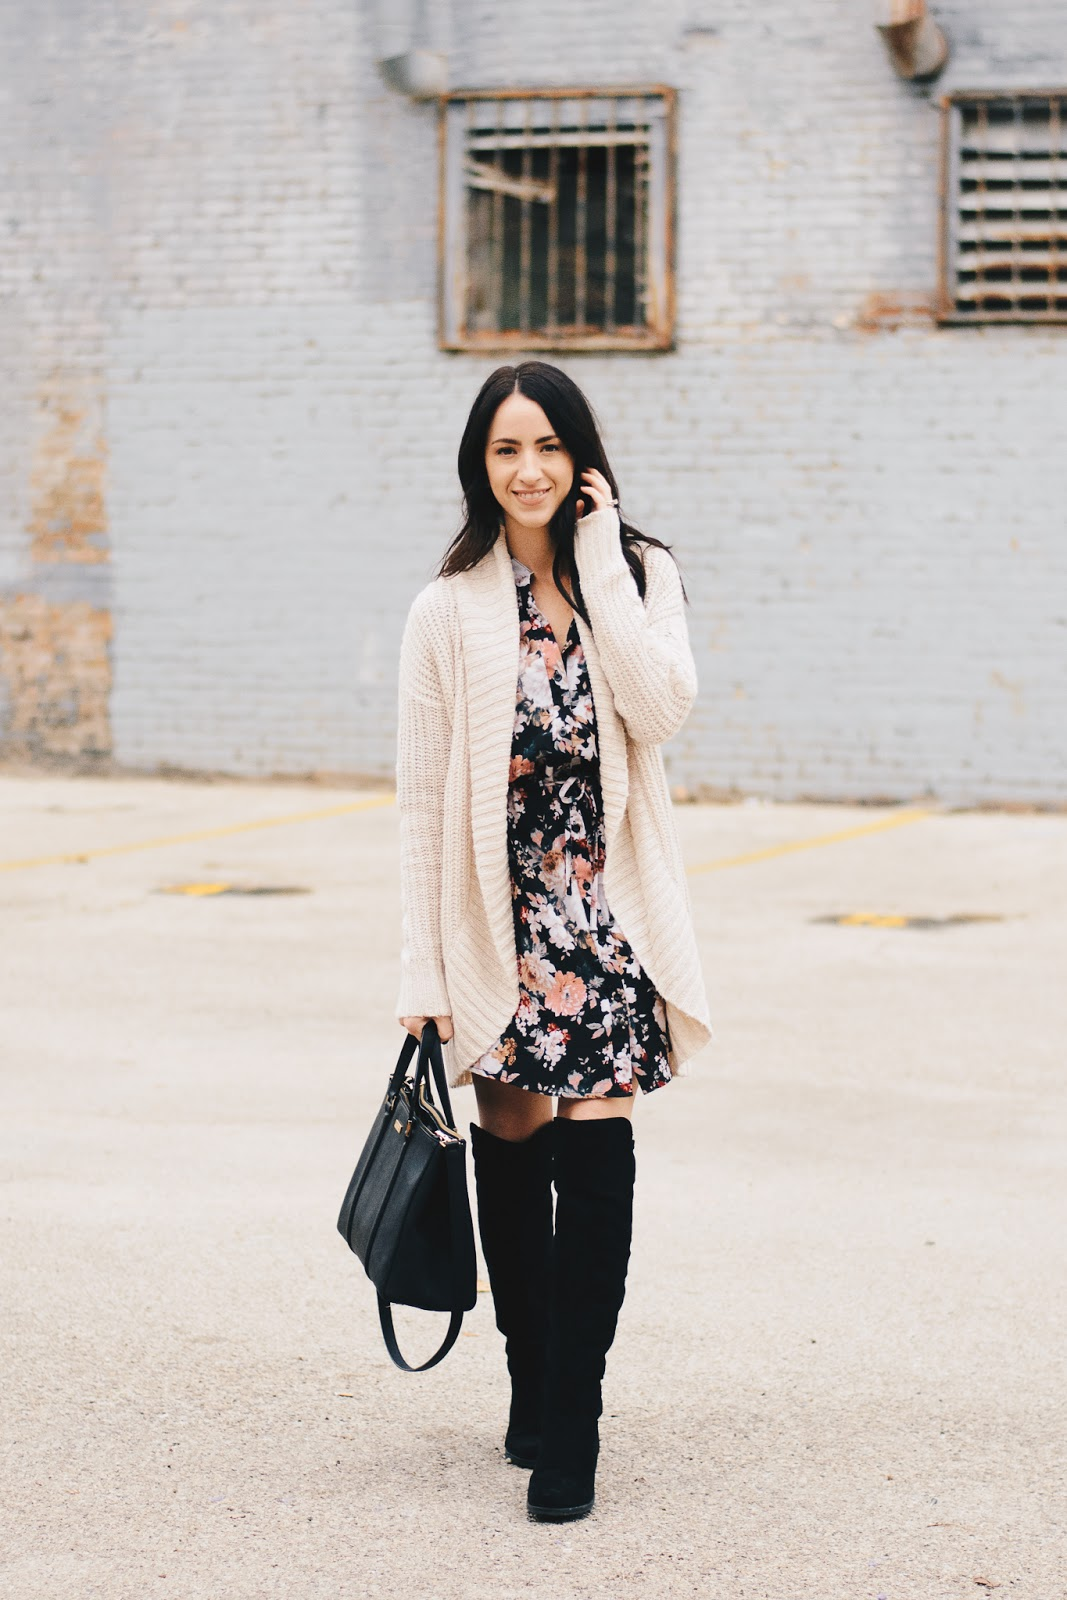 Chic Fall Style Floral Dress and Chunky Knit Cardigan